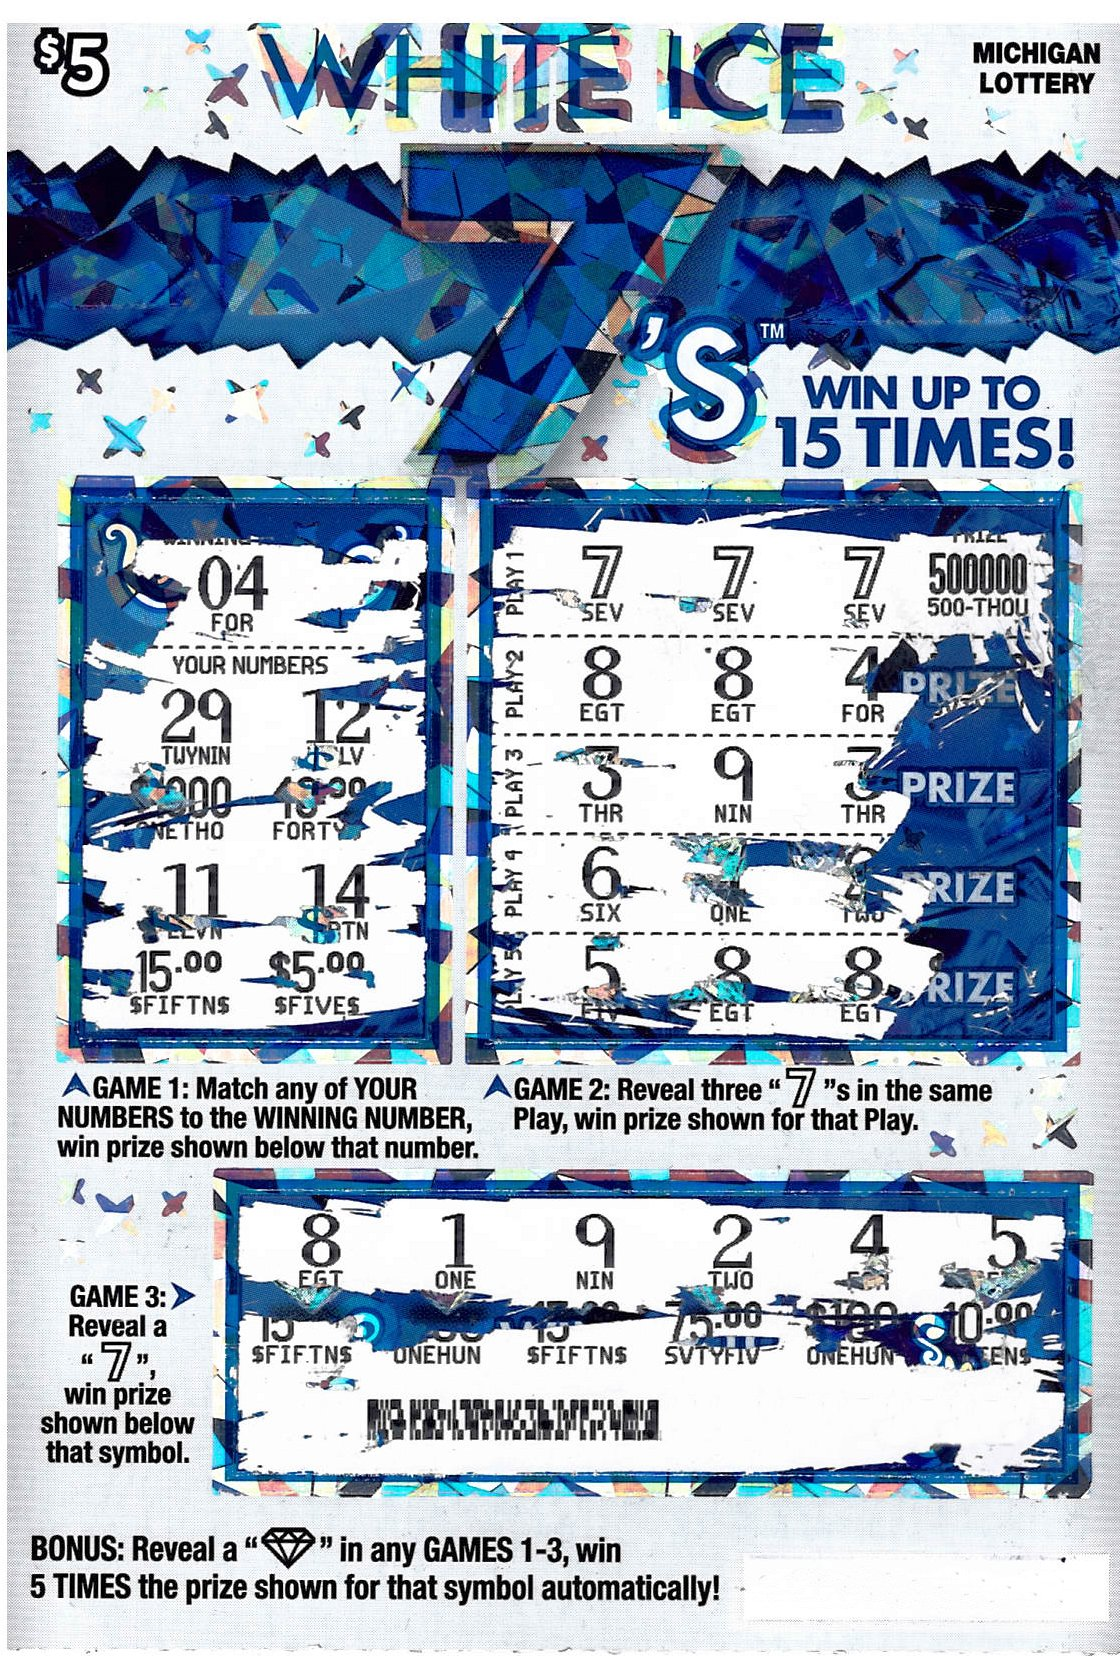 Michigan Lottery Connect | Page 47